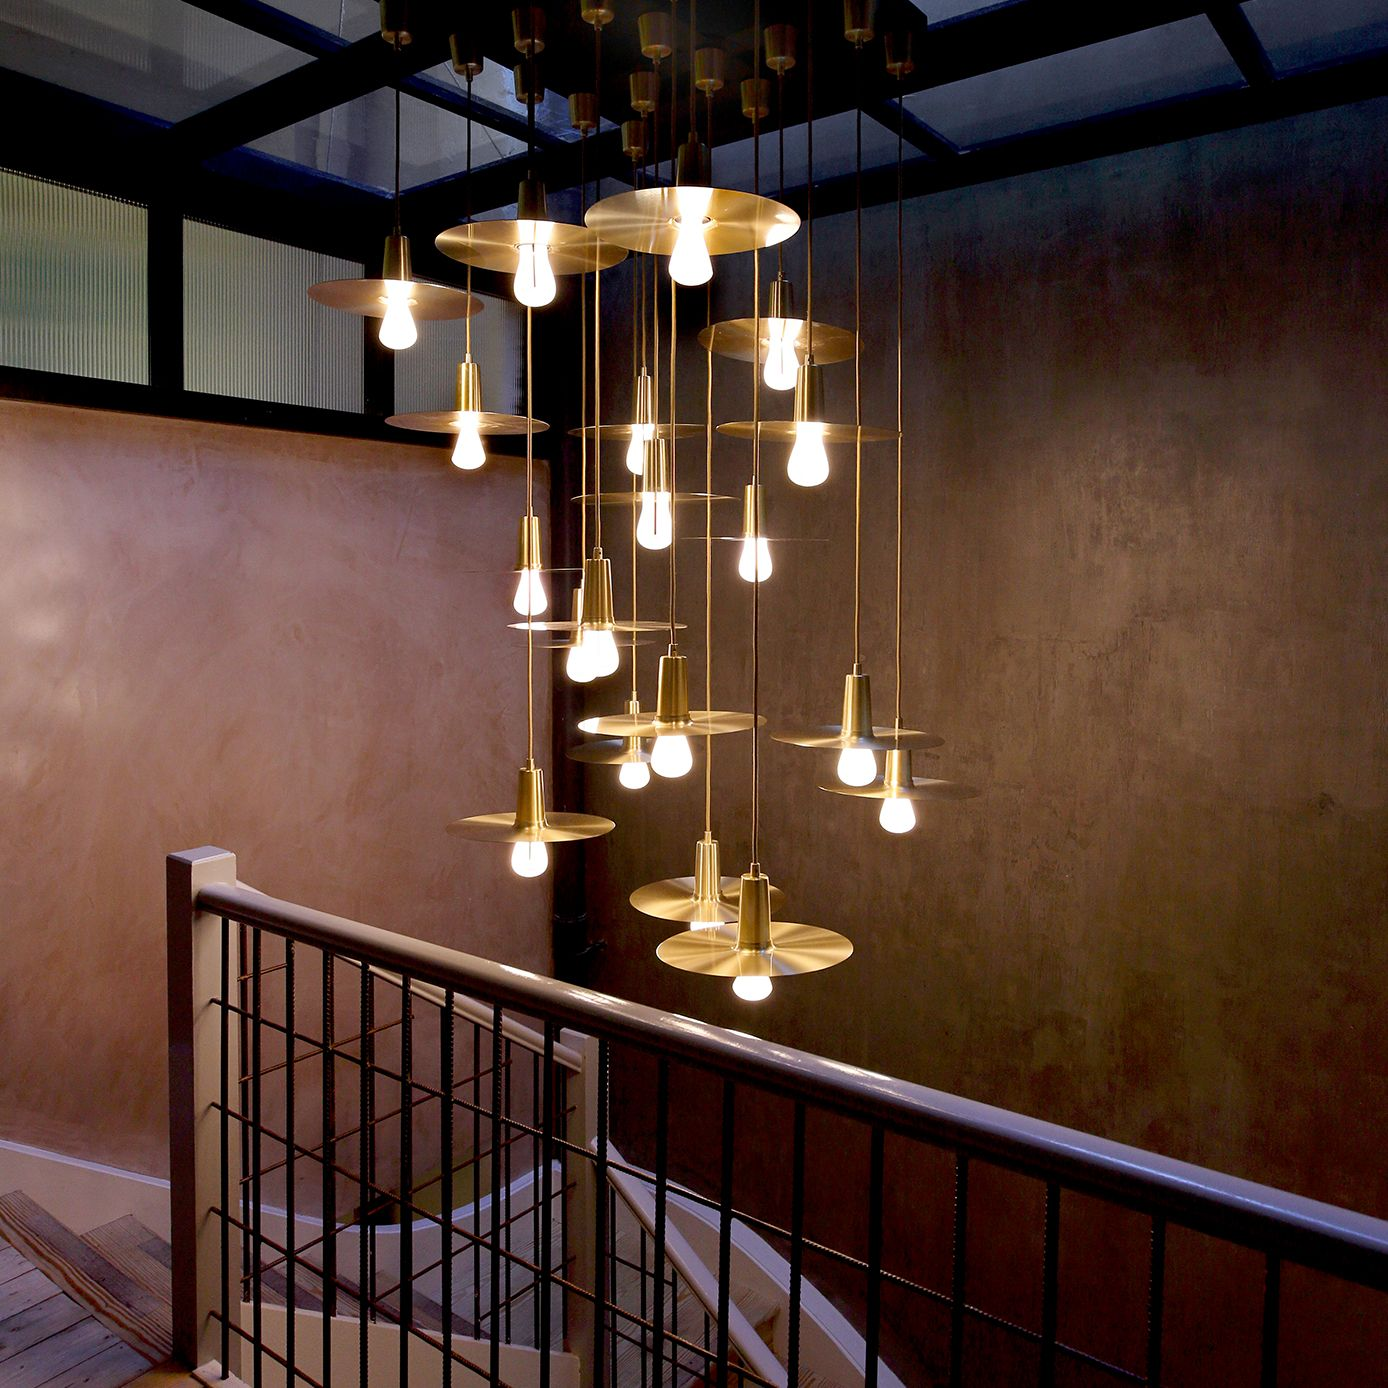 Interior Design Lighting Ideas Jaw Dropping Stunning: Our Good Friends Timberyard Created This Gorgeous Brass